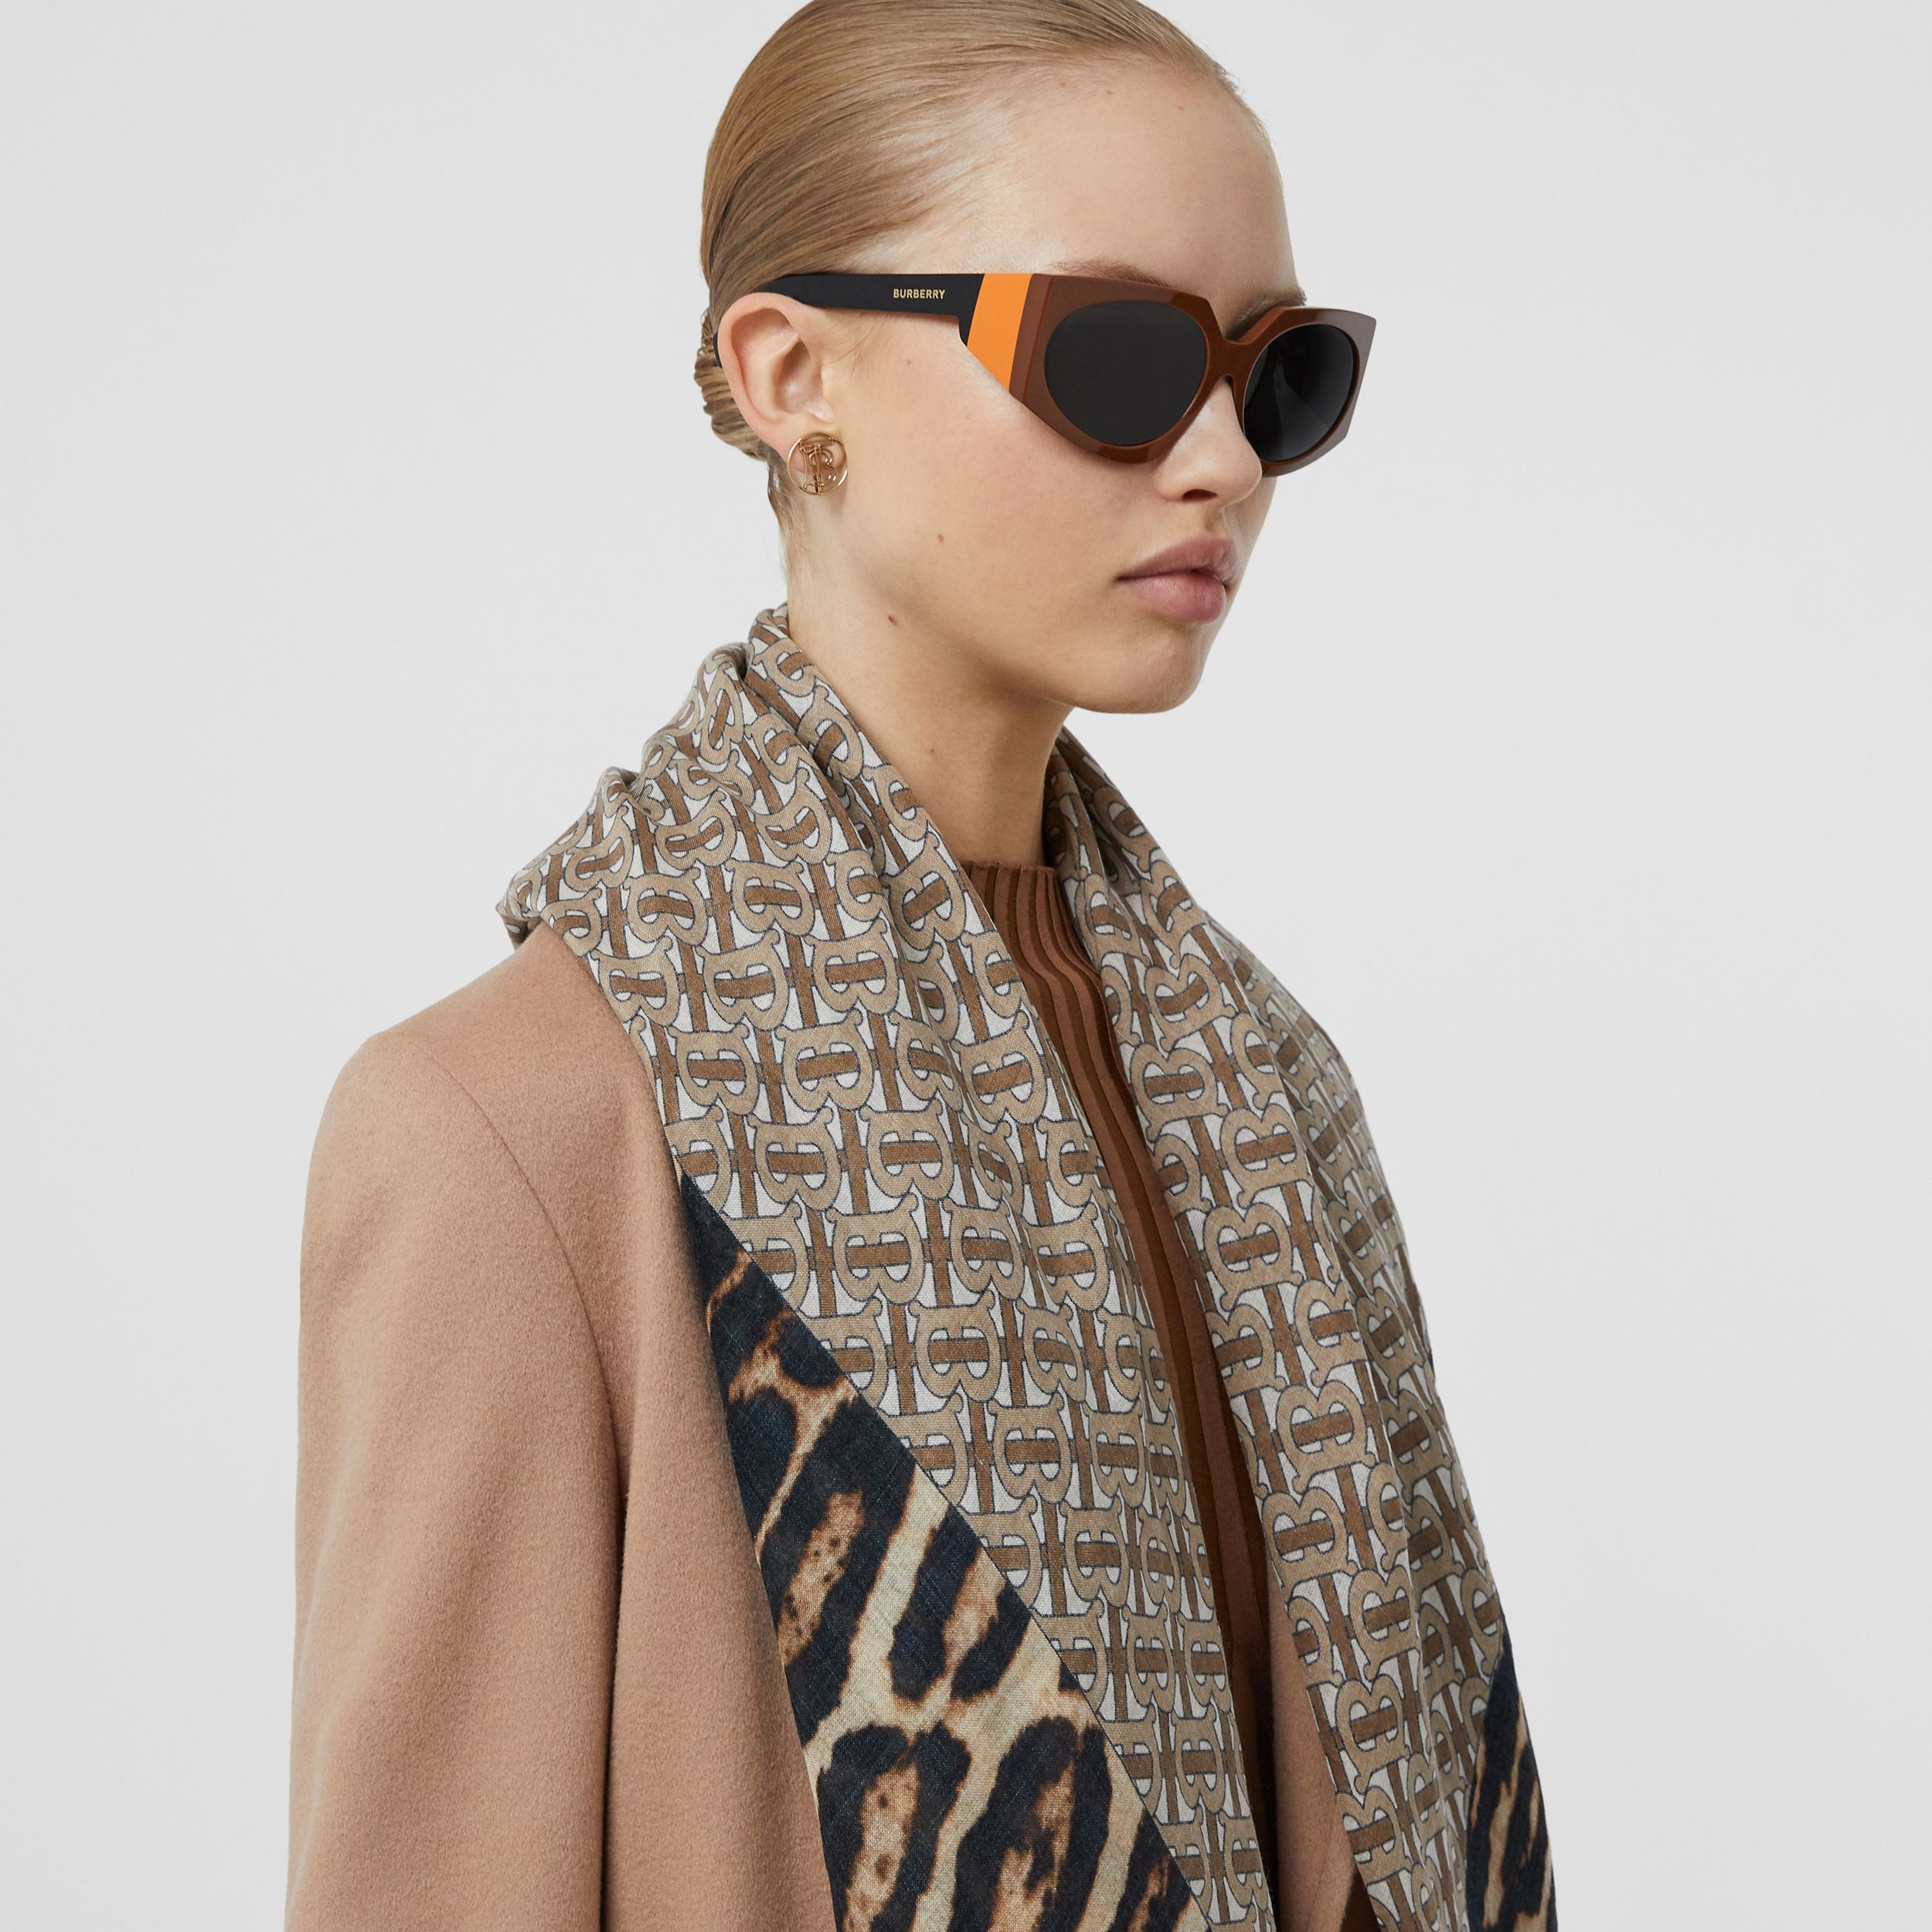 Geometric Frame Sunglasses in Tan - Women | Burberry - 3